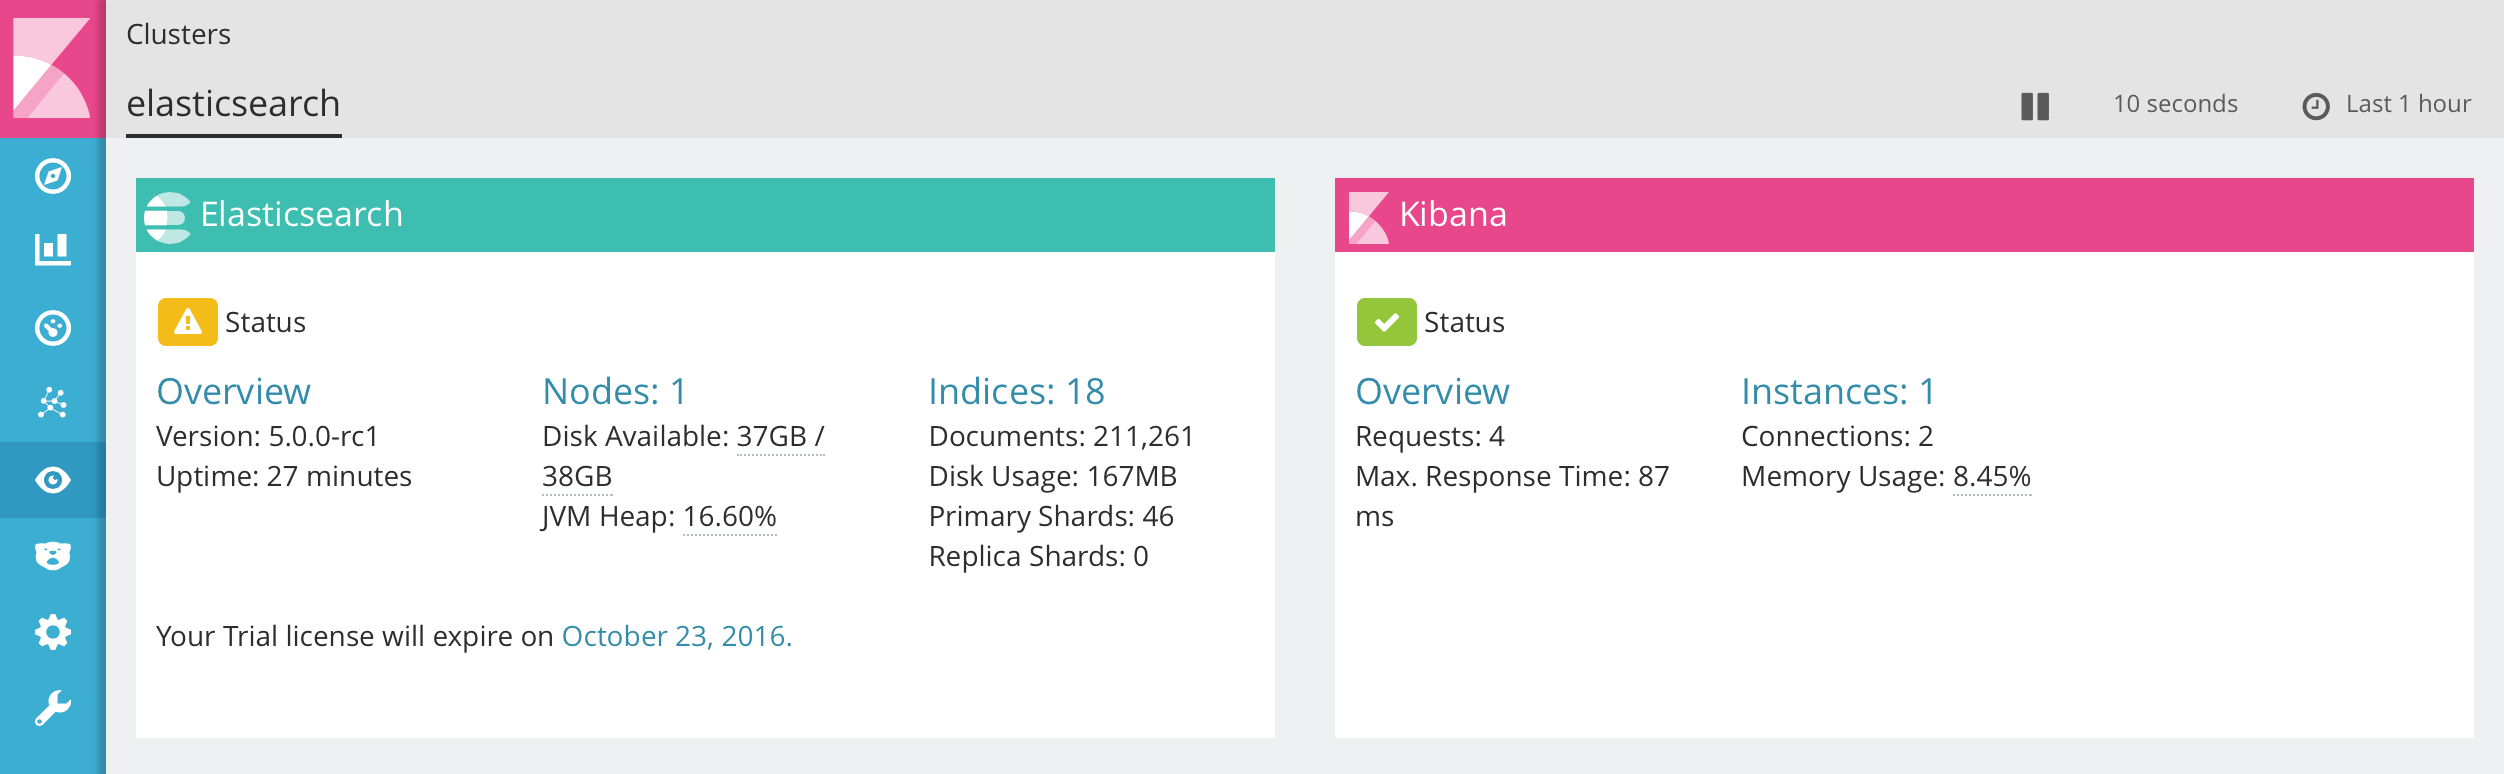 Monitoring_-_elasticsearch_-_Overview